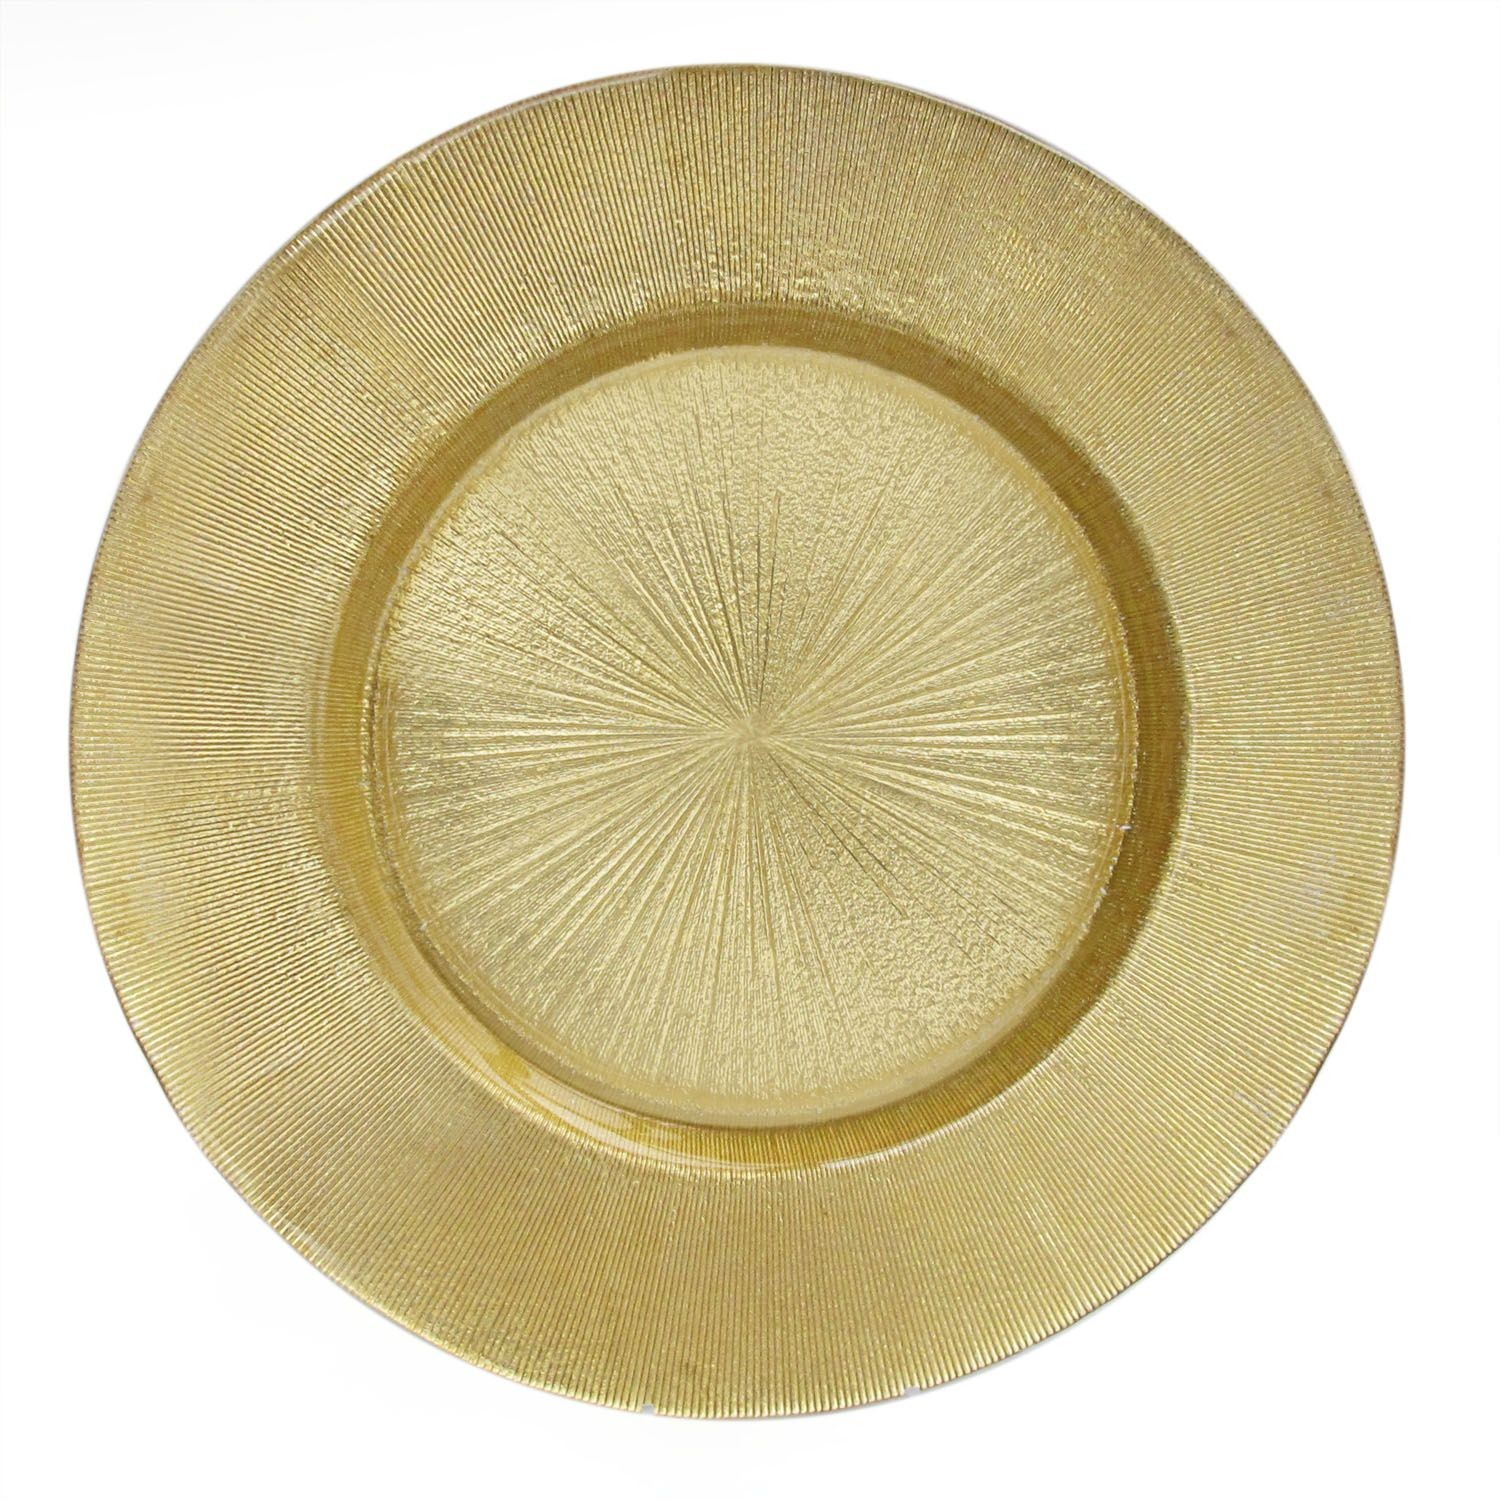 The Jay Companies 1900013 Round Glass Gold Star Burst Charger Plate 13""